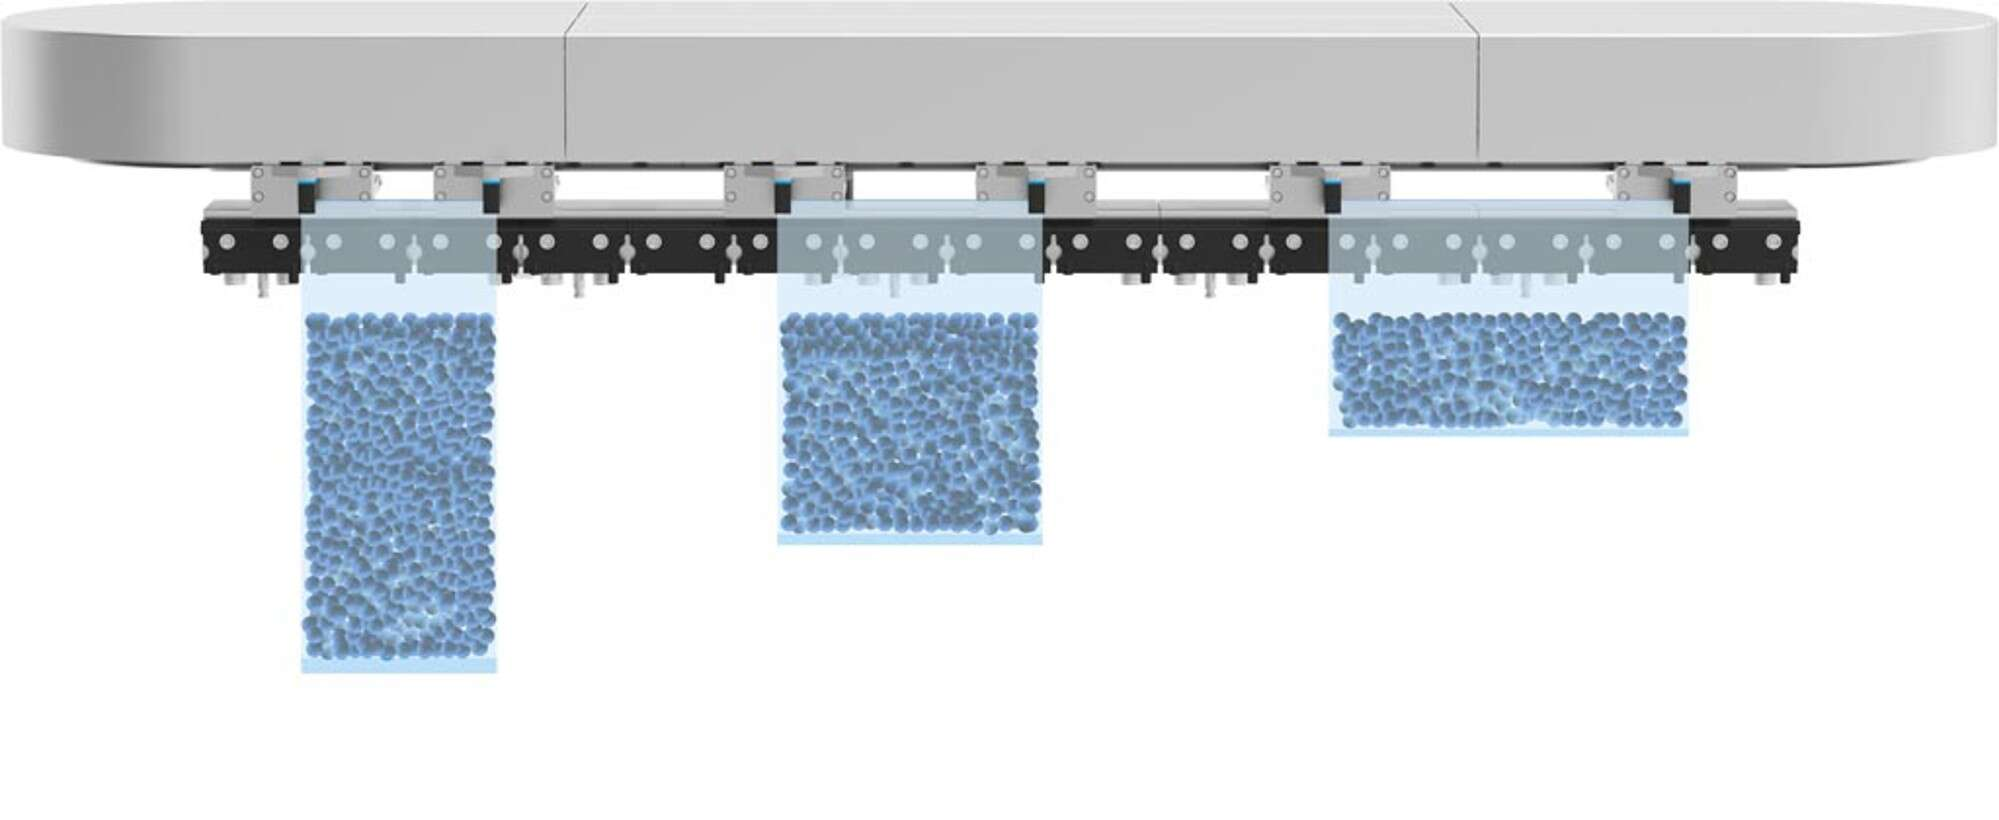 Transport system MCS®: changing filling quantities or formats